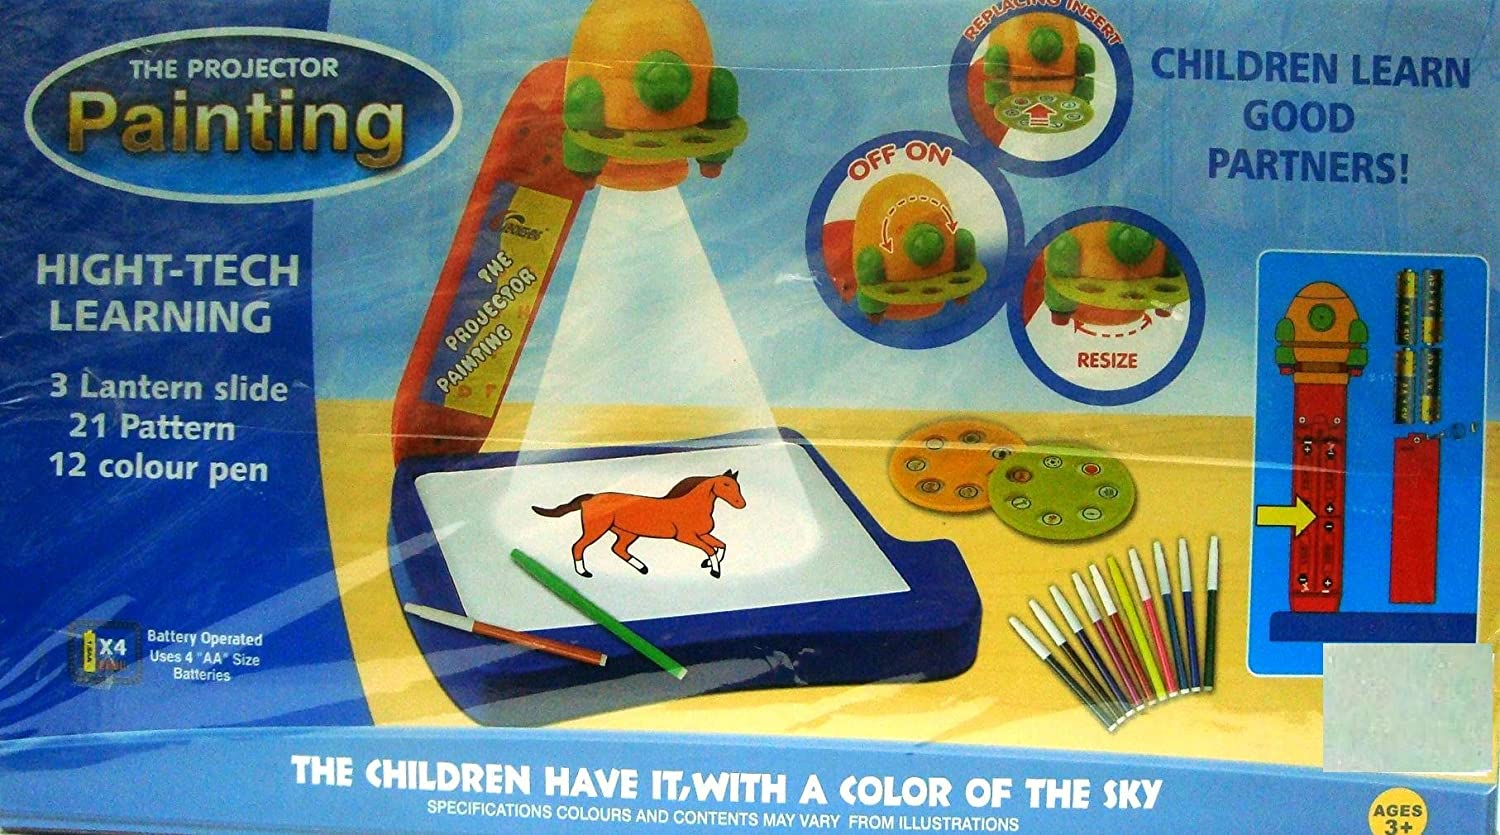 buy the projector painting game toy set for kids online at low